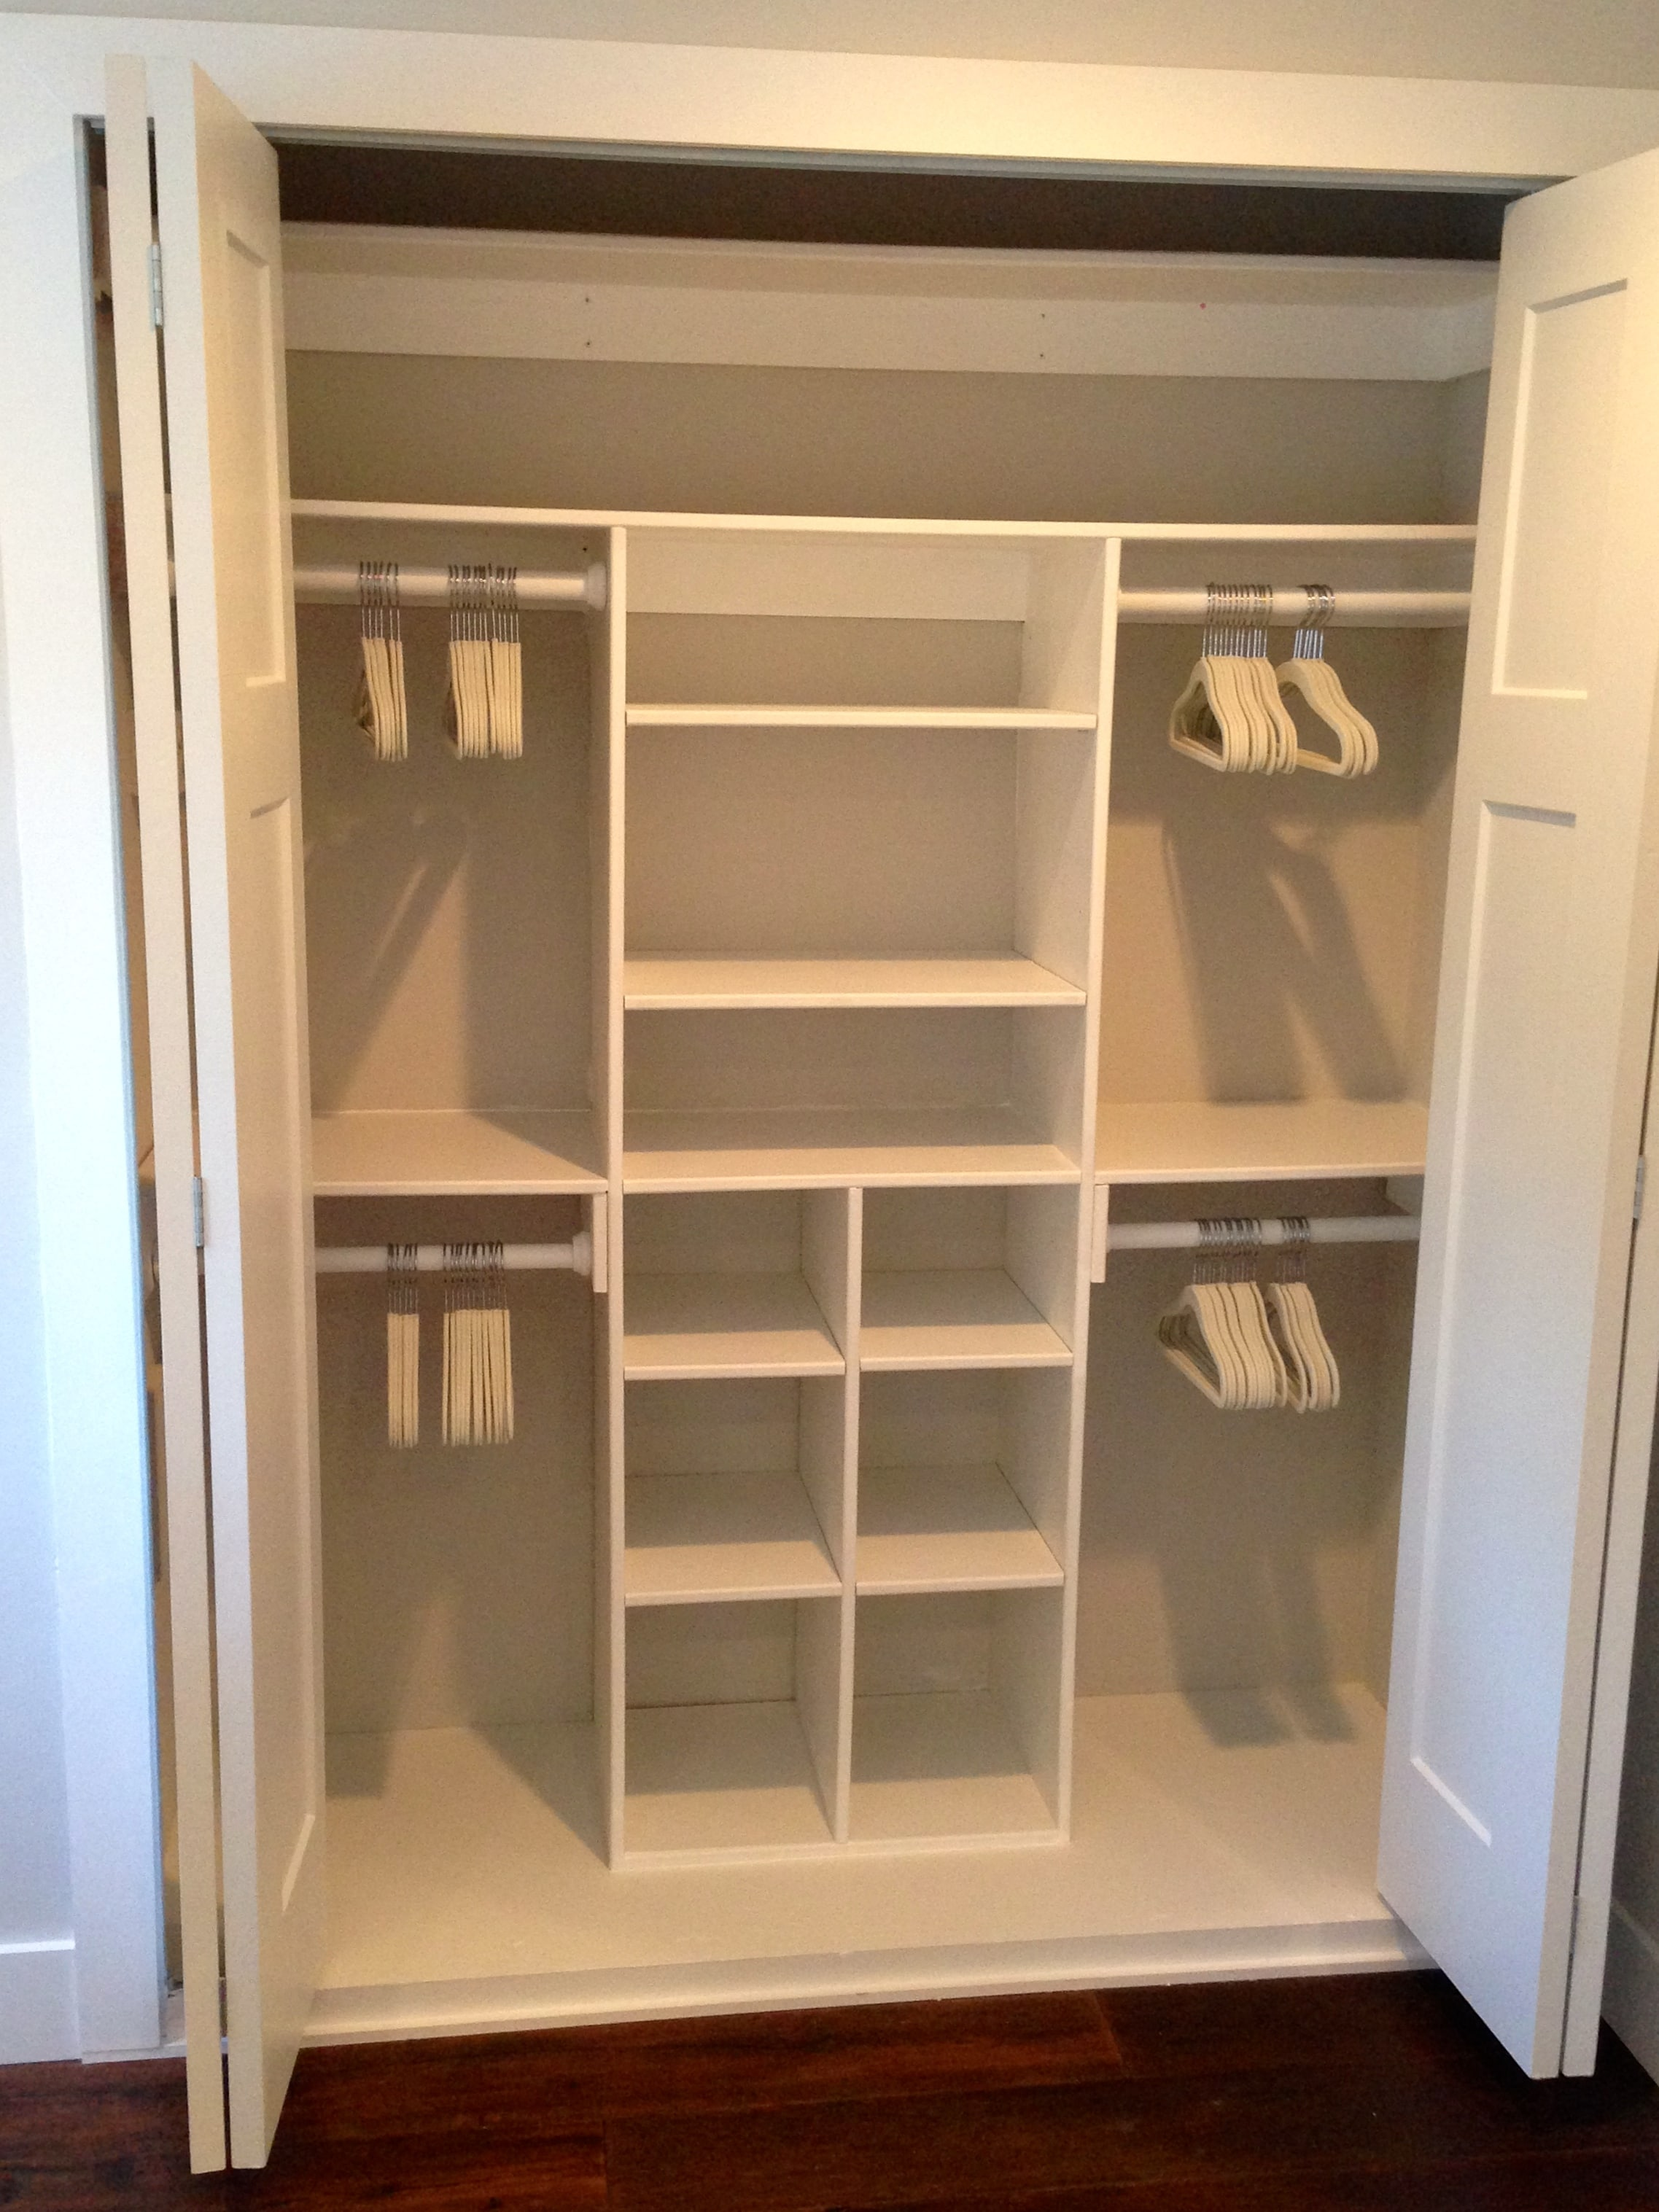 Small closet solutions squarefrank for Storage solutions for small closets